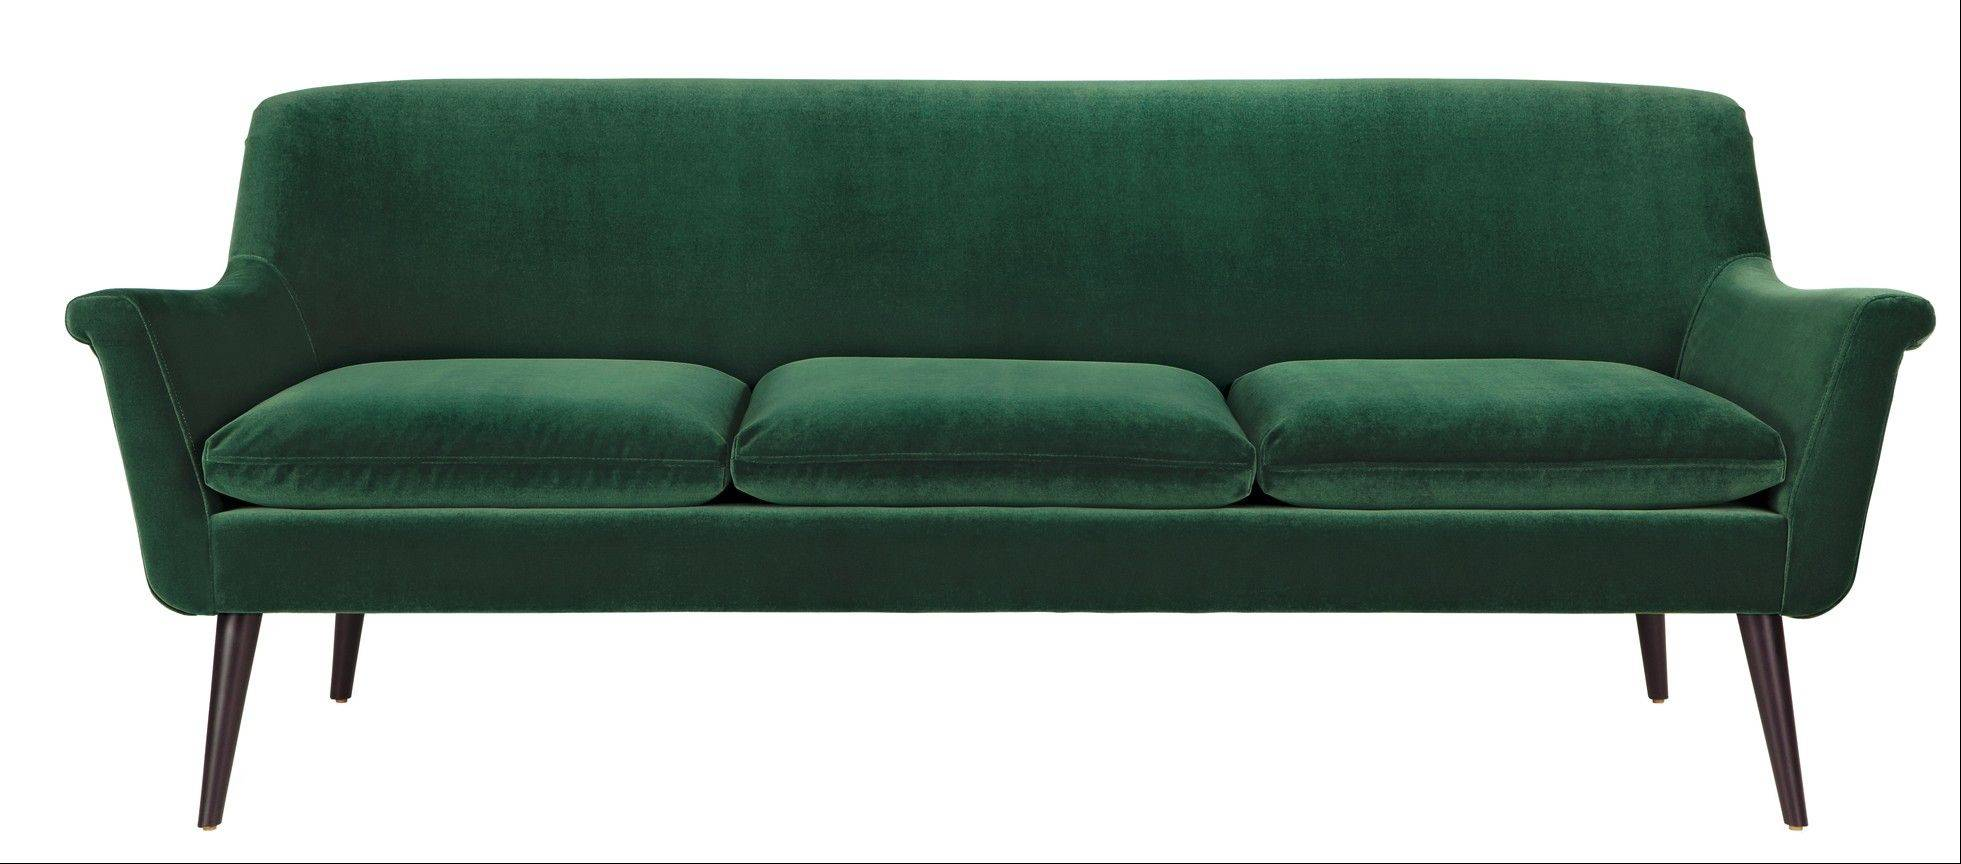 For the daring among us, an emerald sofa is the ticket to this year's color trend.